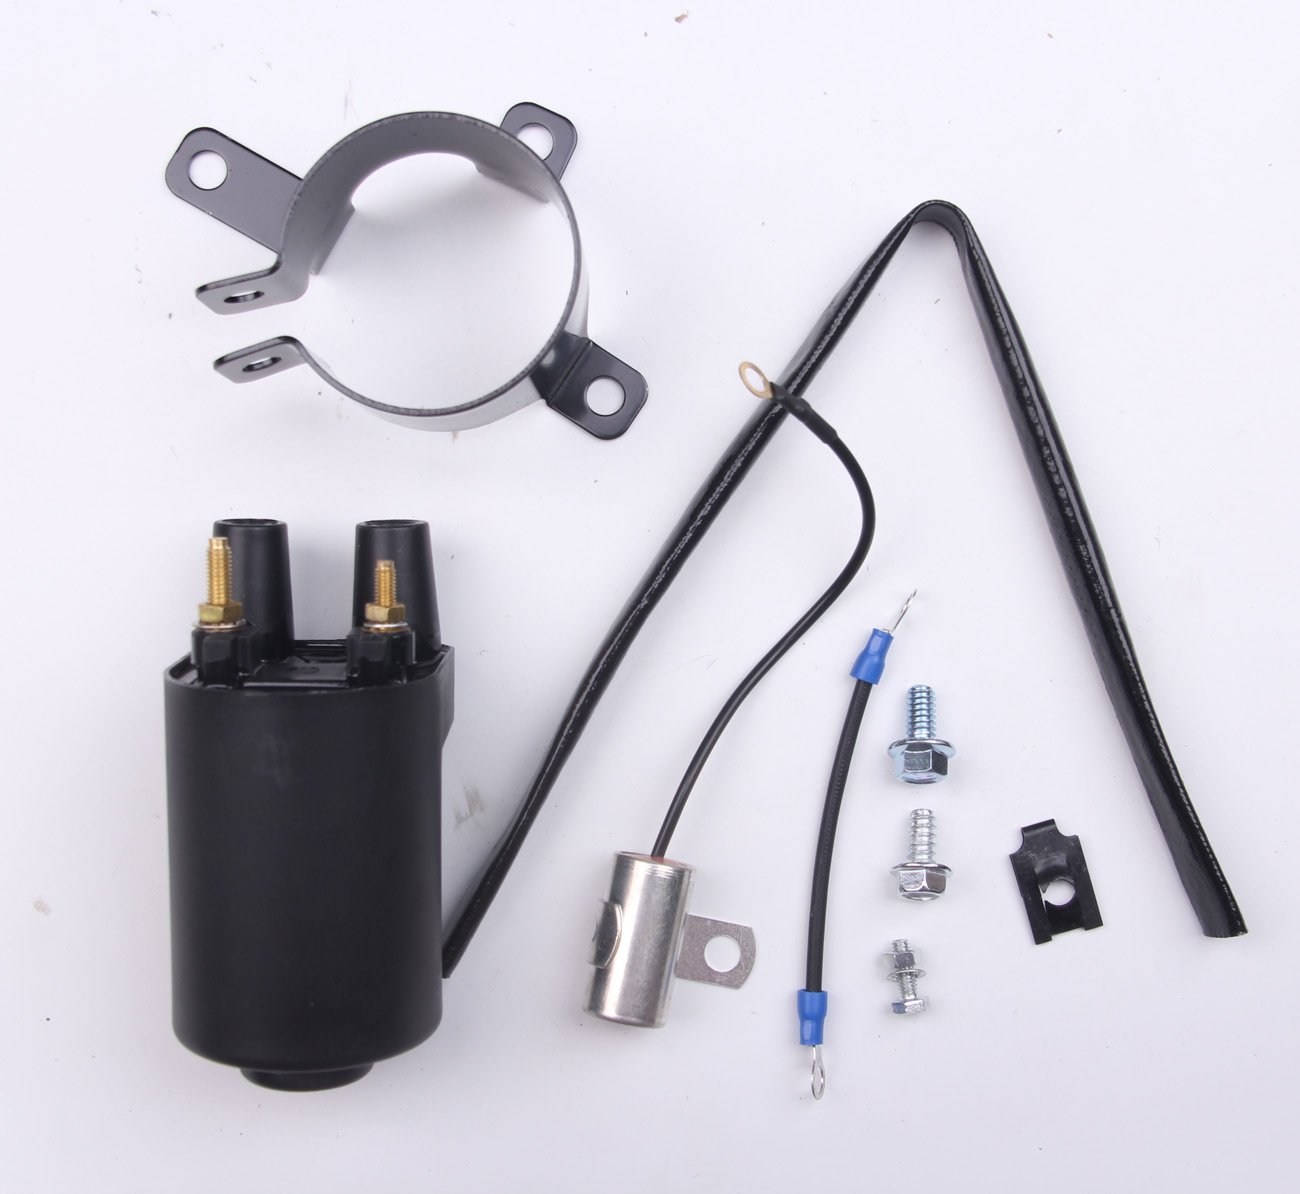 BGM BGE New Ignition Coil Kit For Onan 541-0522 P Series NHE /& NHM,Replace #166-0761,166-0820 Goodbest NHD BGD